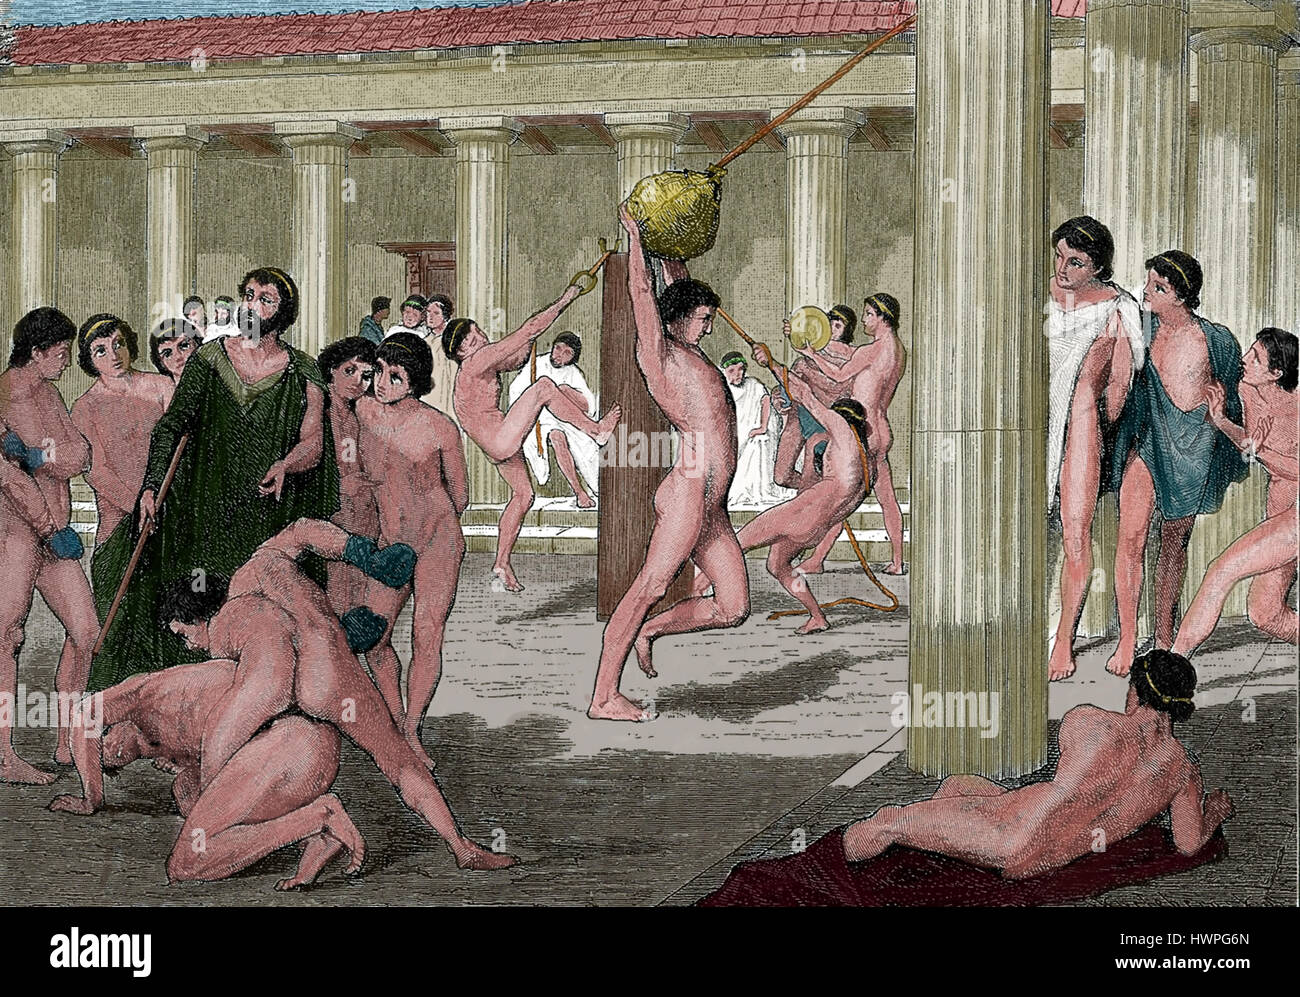 Classical antiquity. Agoge. education and training program by male Spartan citizens. Gymnasium. Engraving, colored. - Stock Image